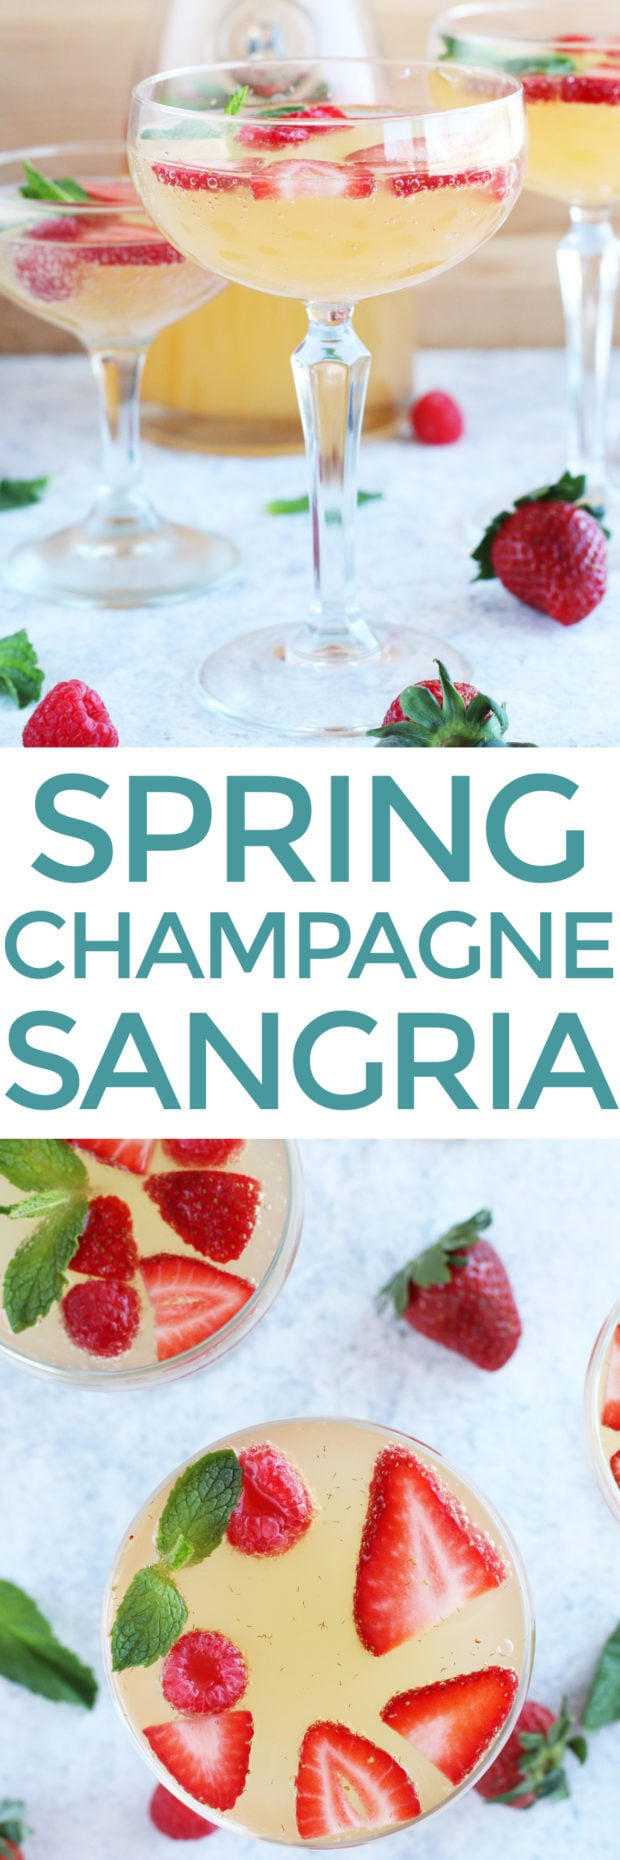 Easy Champagne Sangria